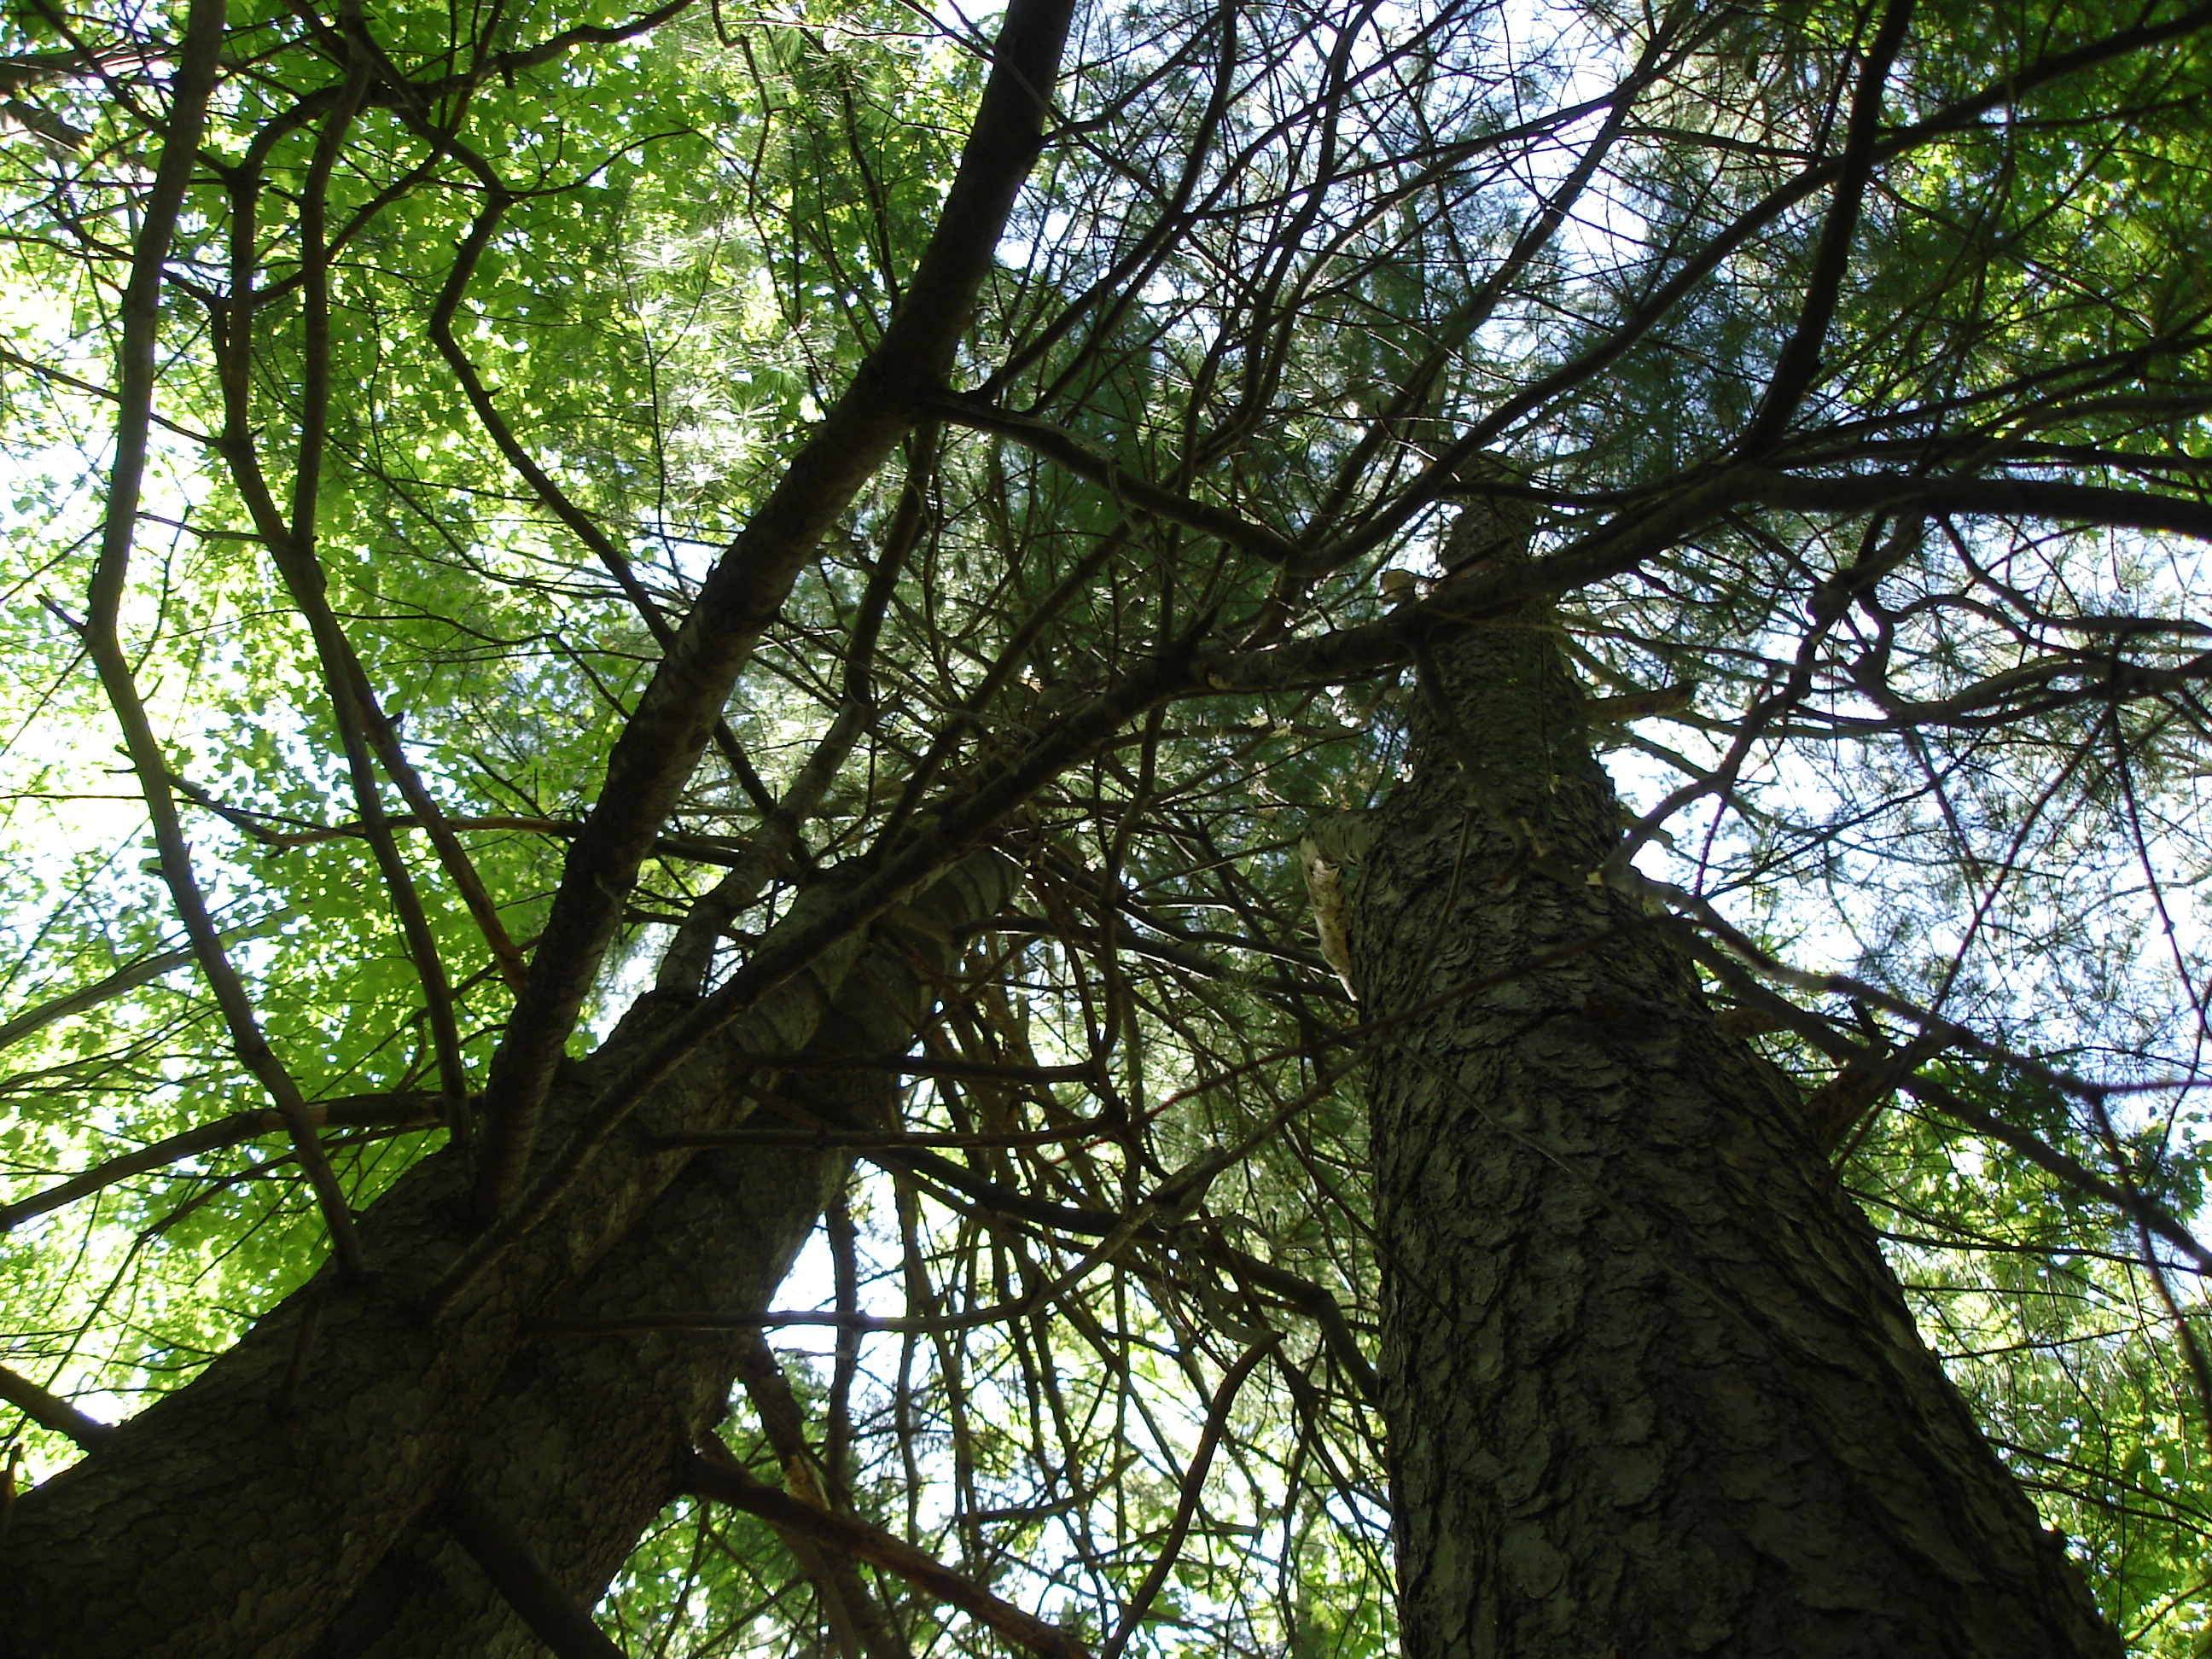 Looking up at wooded treetops